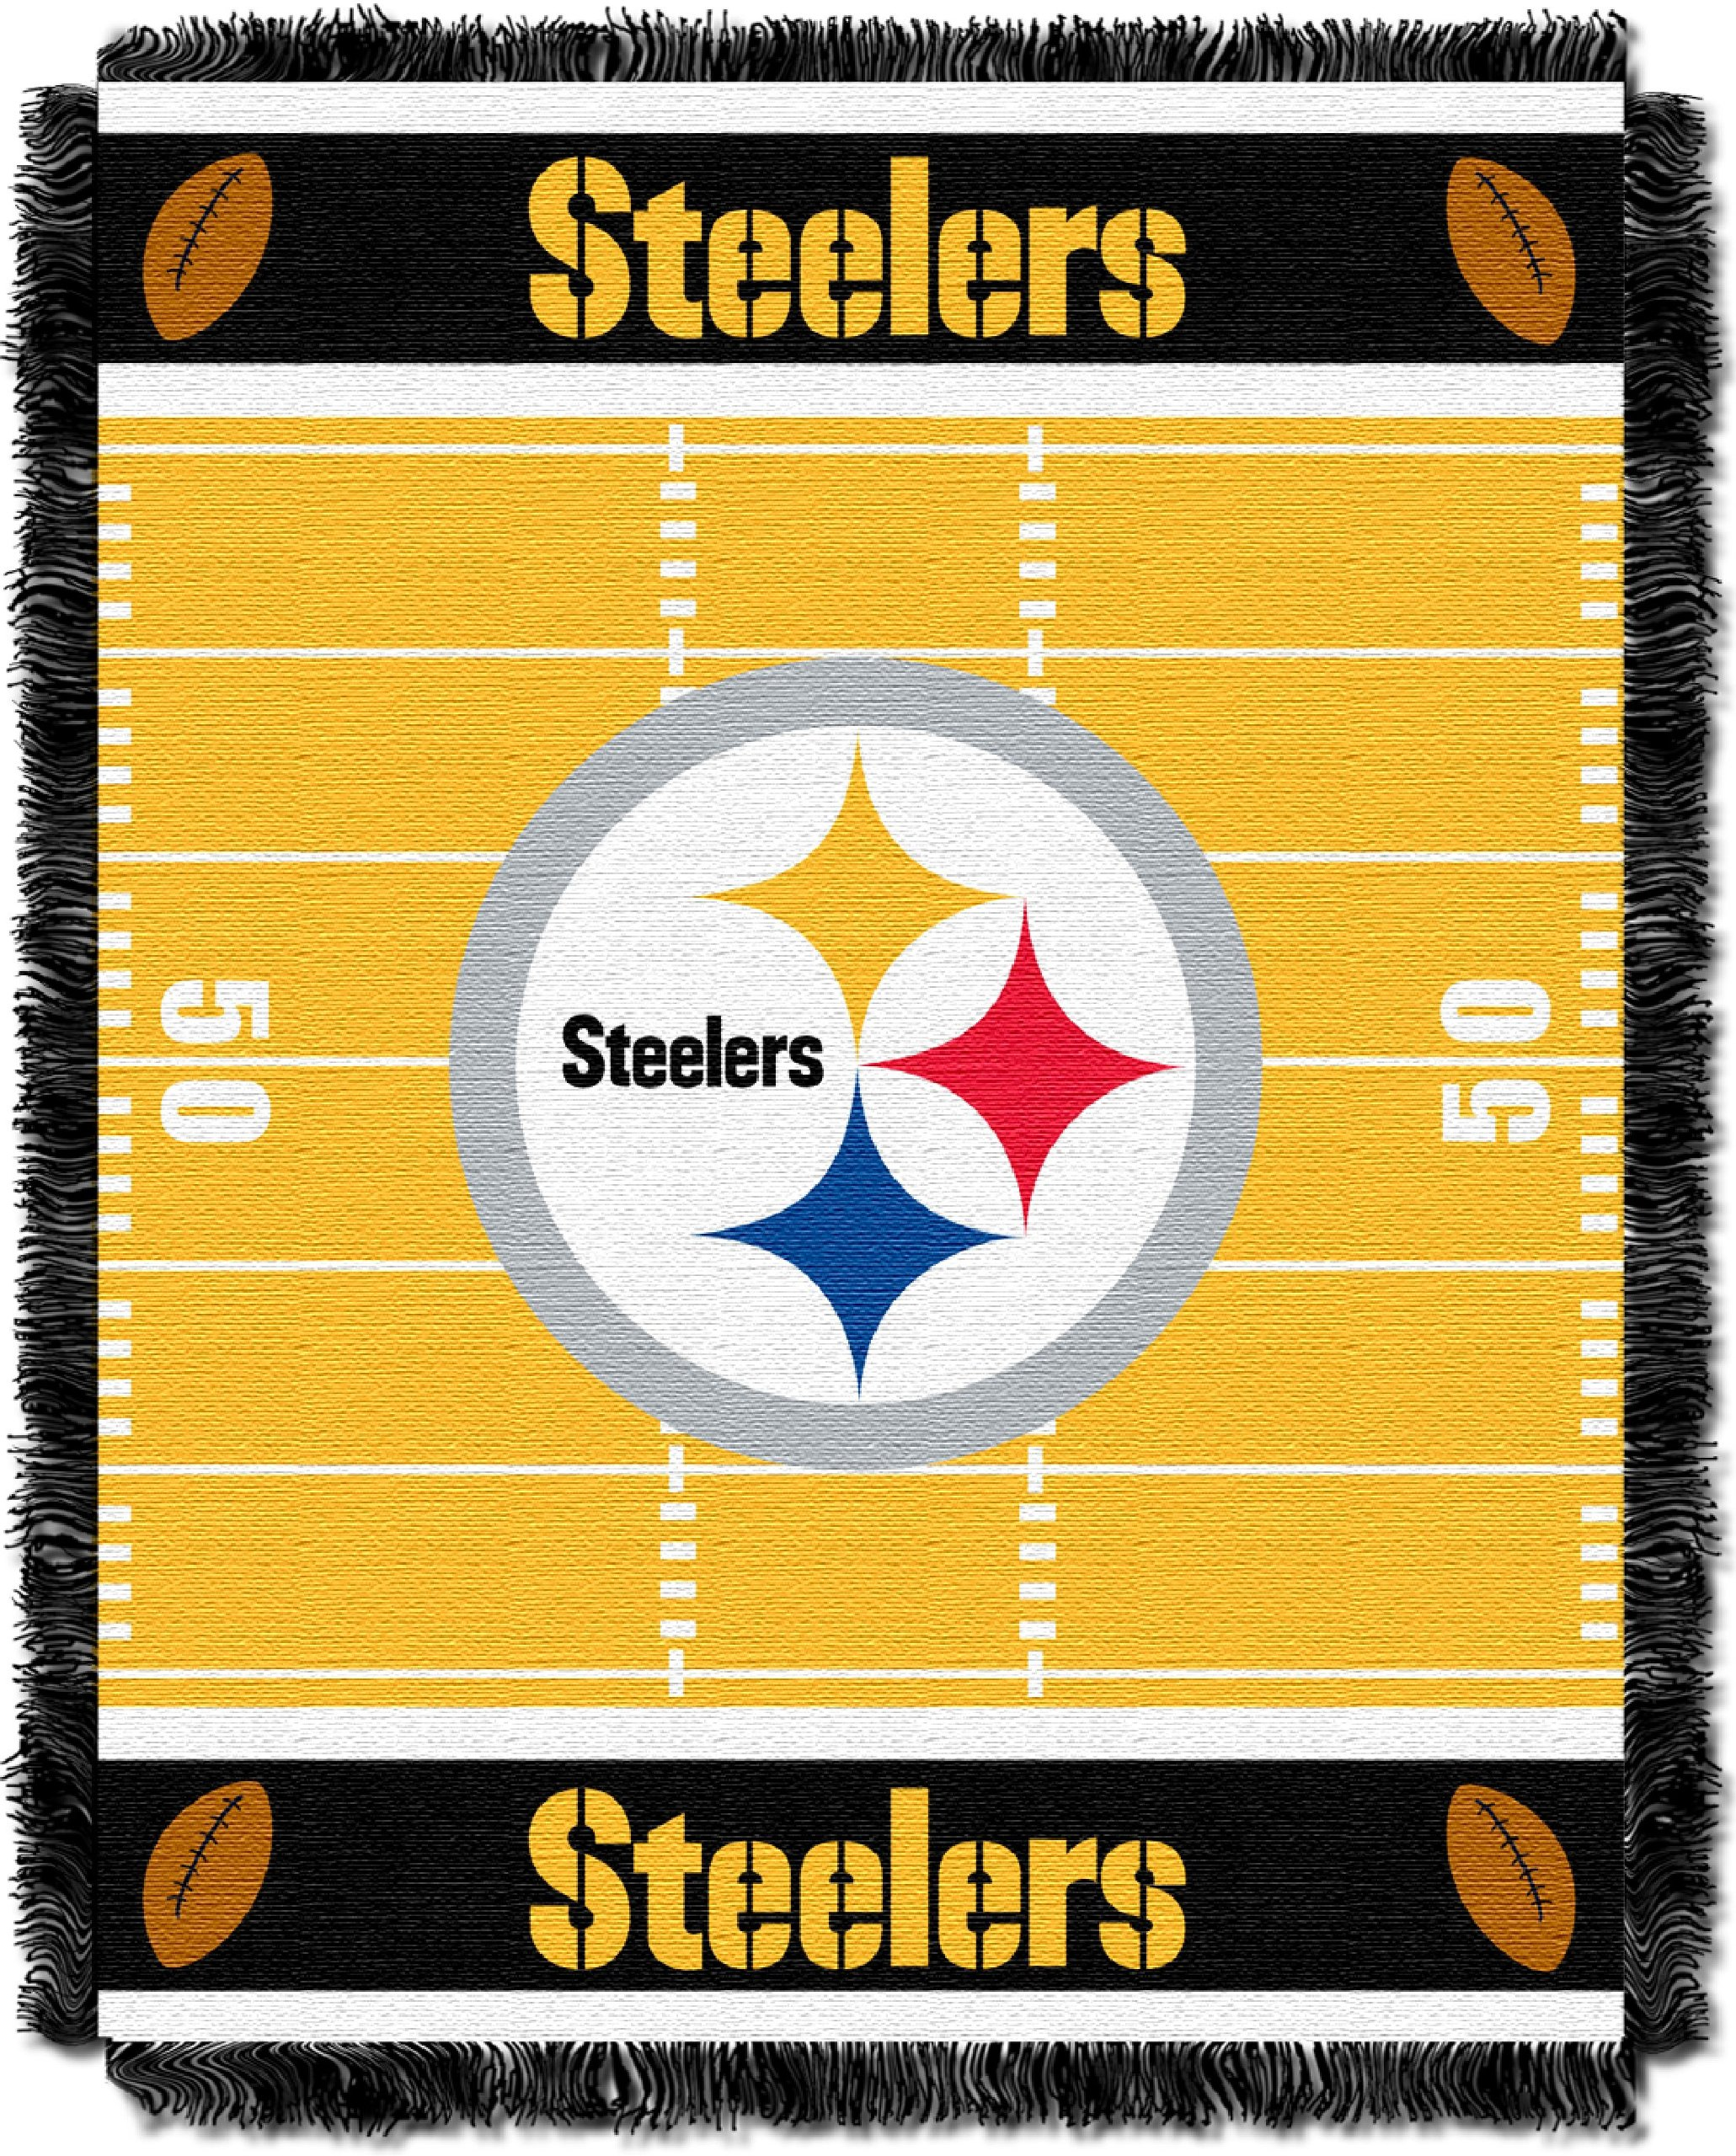 The Northwest Company Officially Licensed NFL Pittsburgh Steelers Field Bear Woven Jacquard Baby Throw Blanket, 36'' x 46'', Multi Color by The Northwest Company